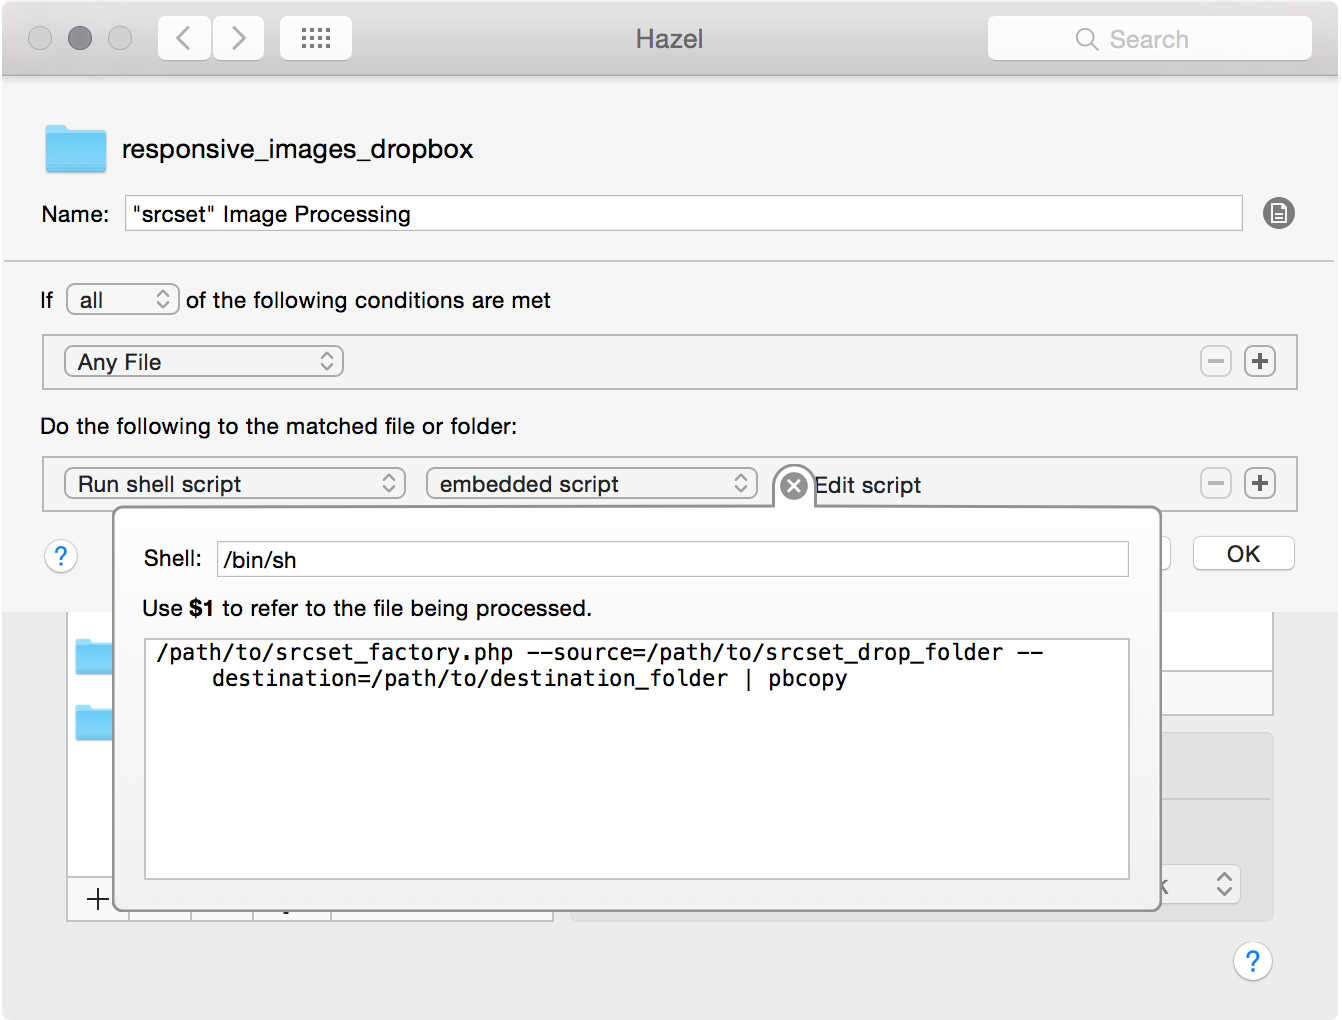 configuring 'Hazel' rules on OSX